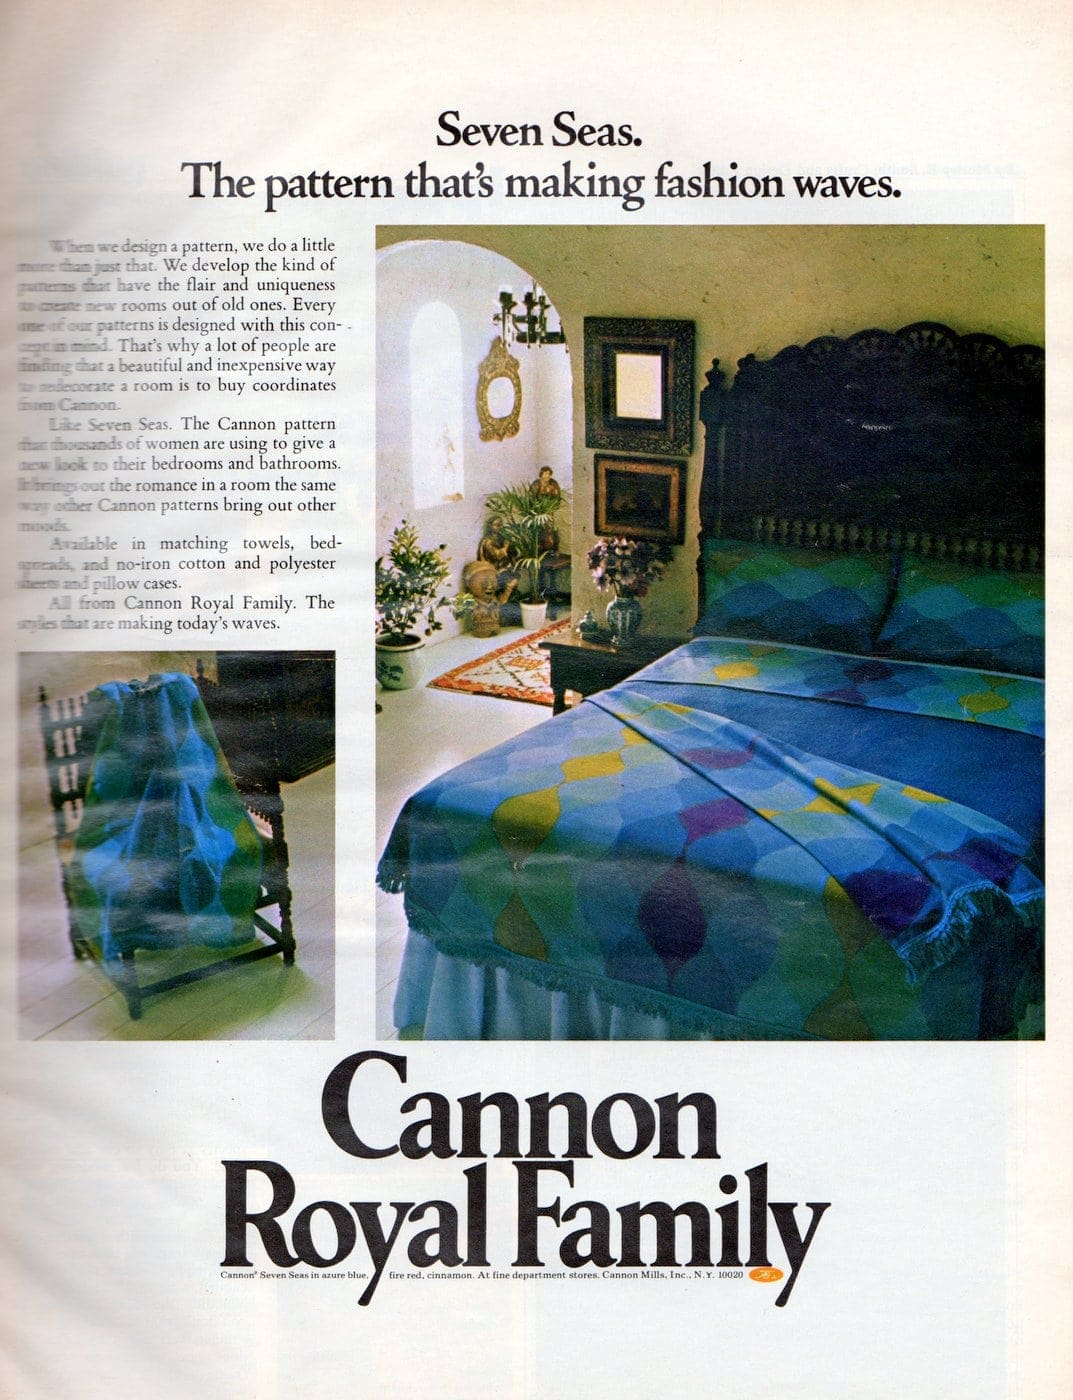 Vintage sheets - Cannon Seven Seas pattern from 1972